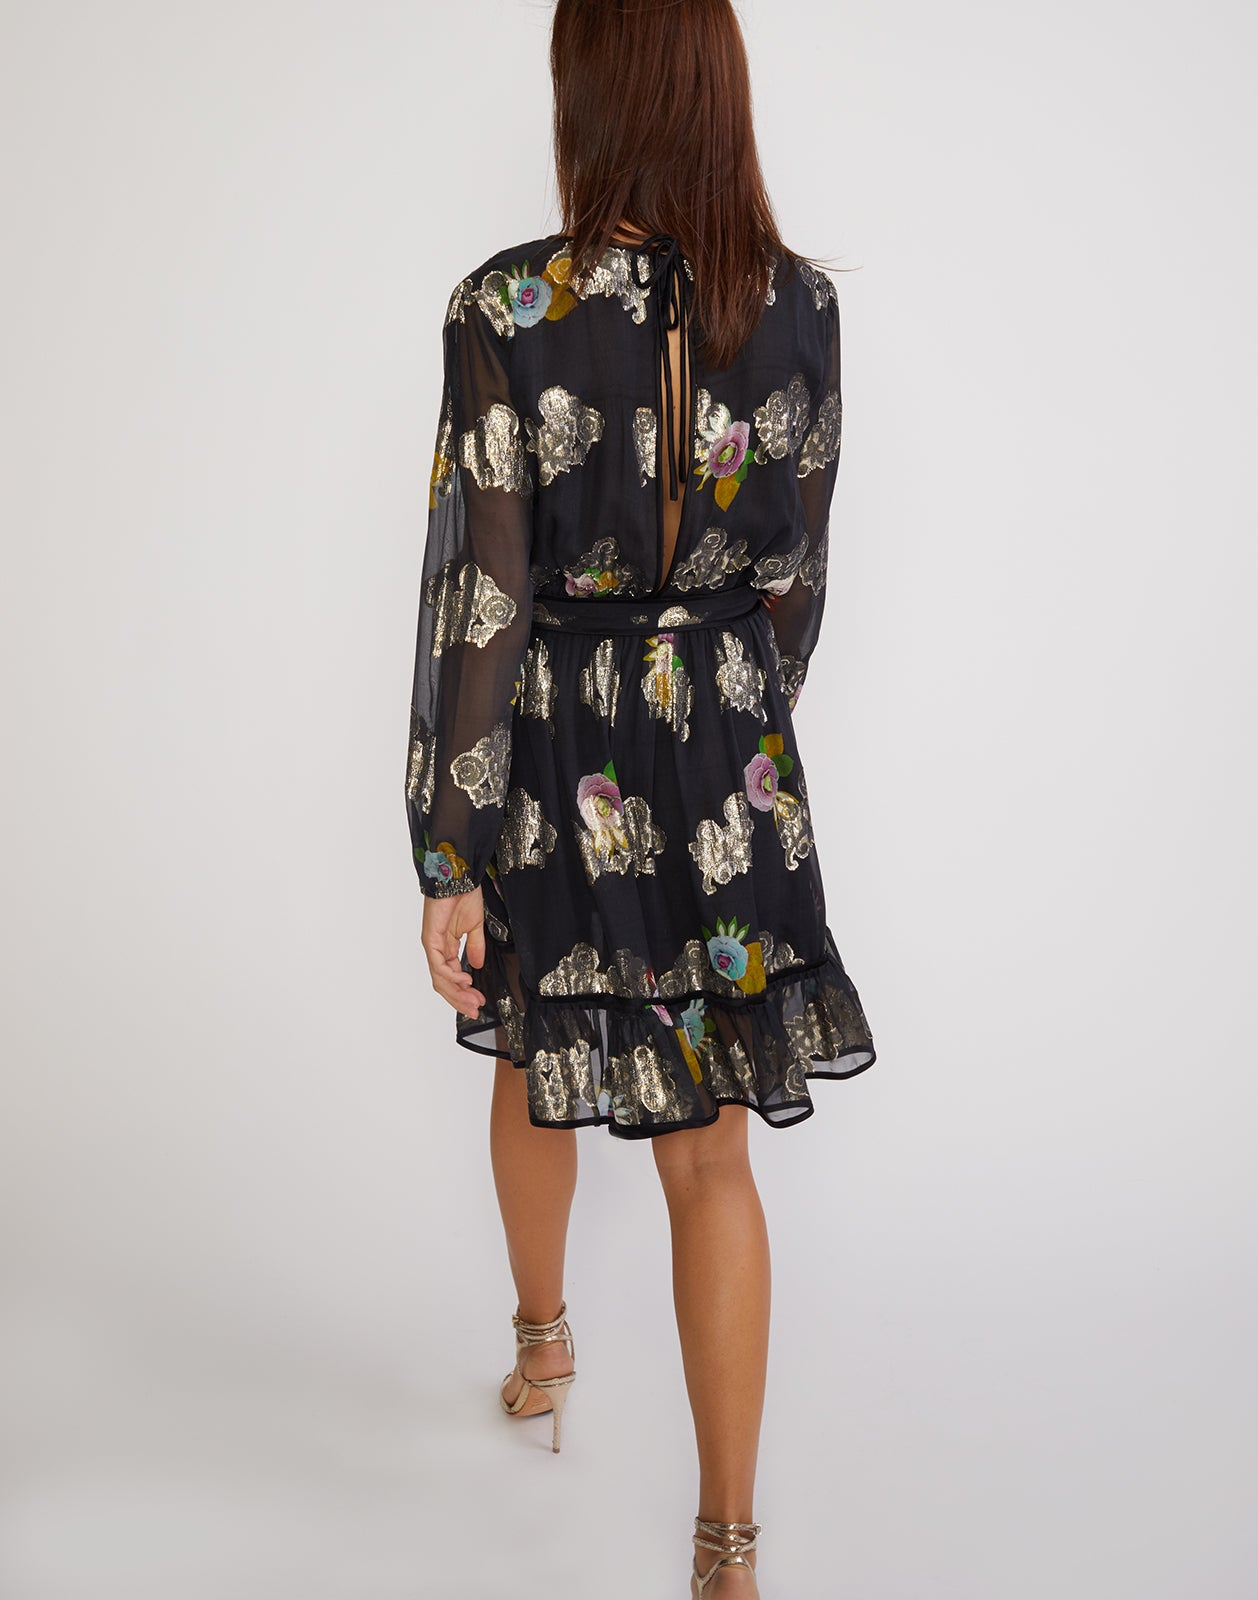 Back view of Sheer Metallic Floral Flounce Dress